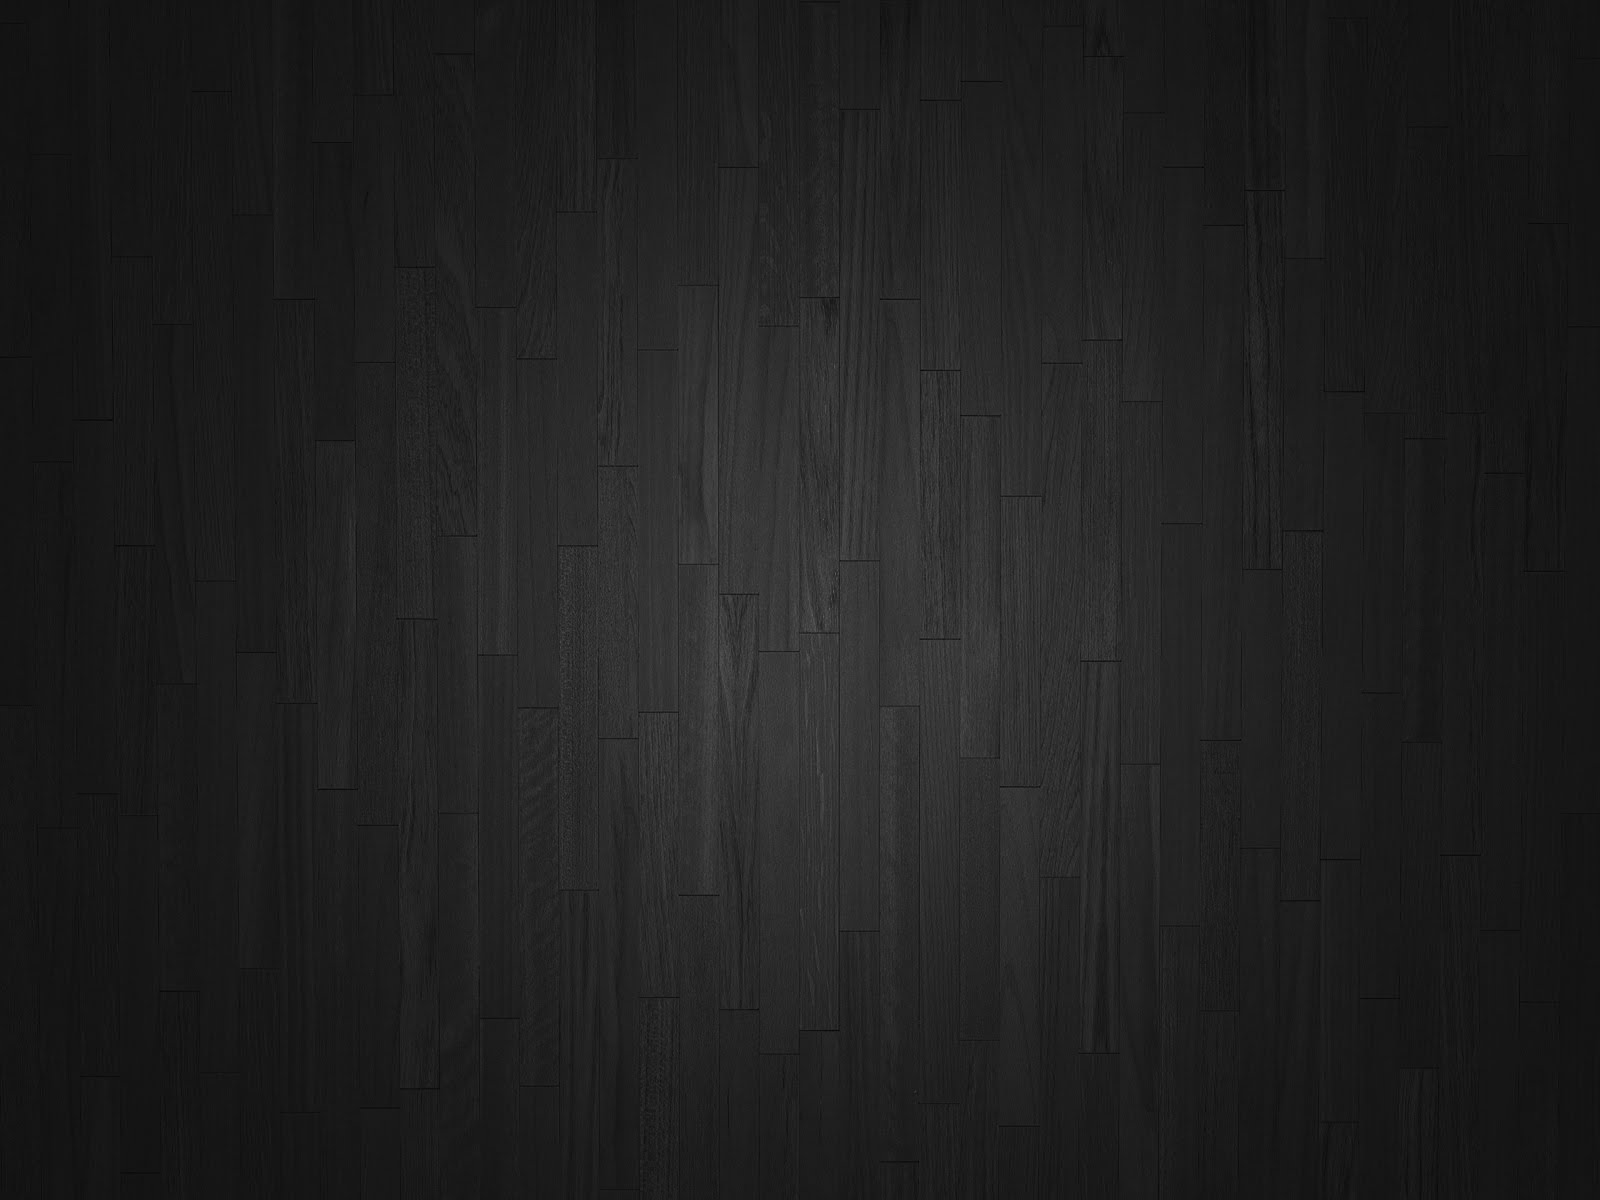 wallpapers box black wood - photo #1